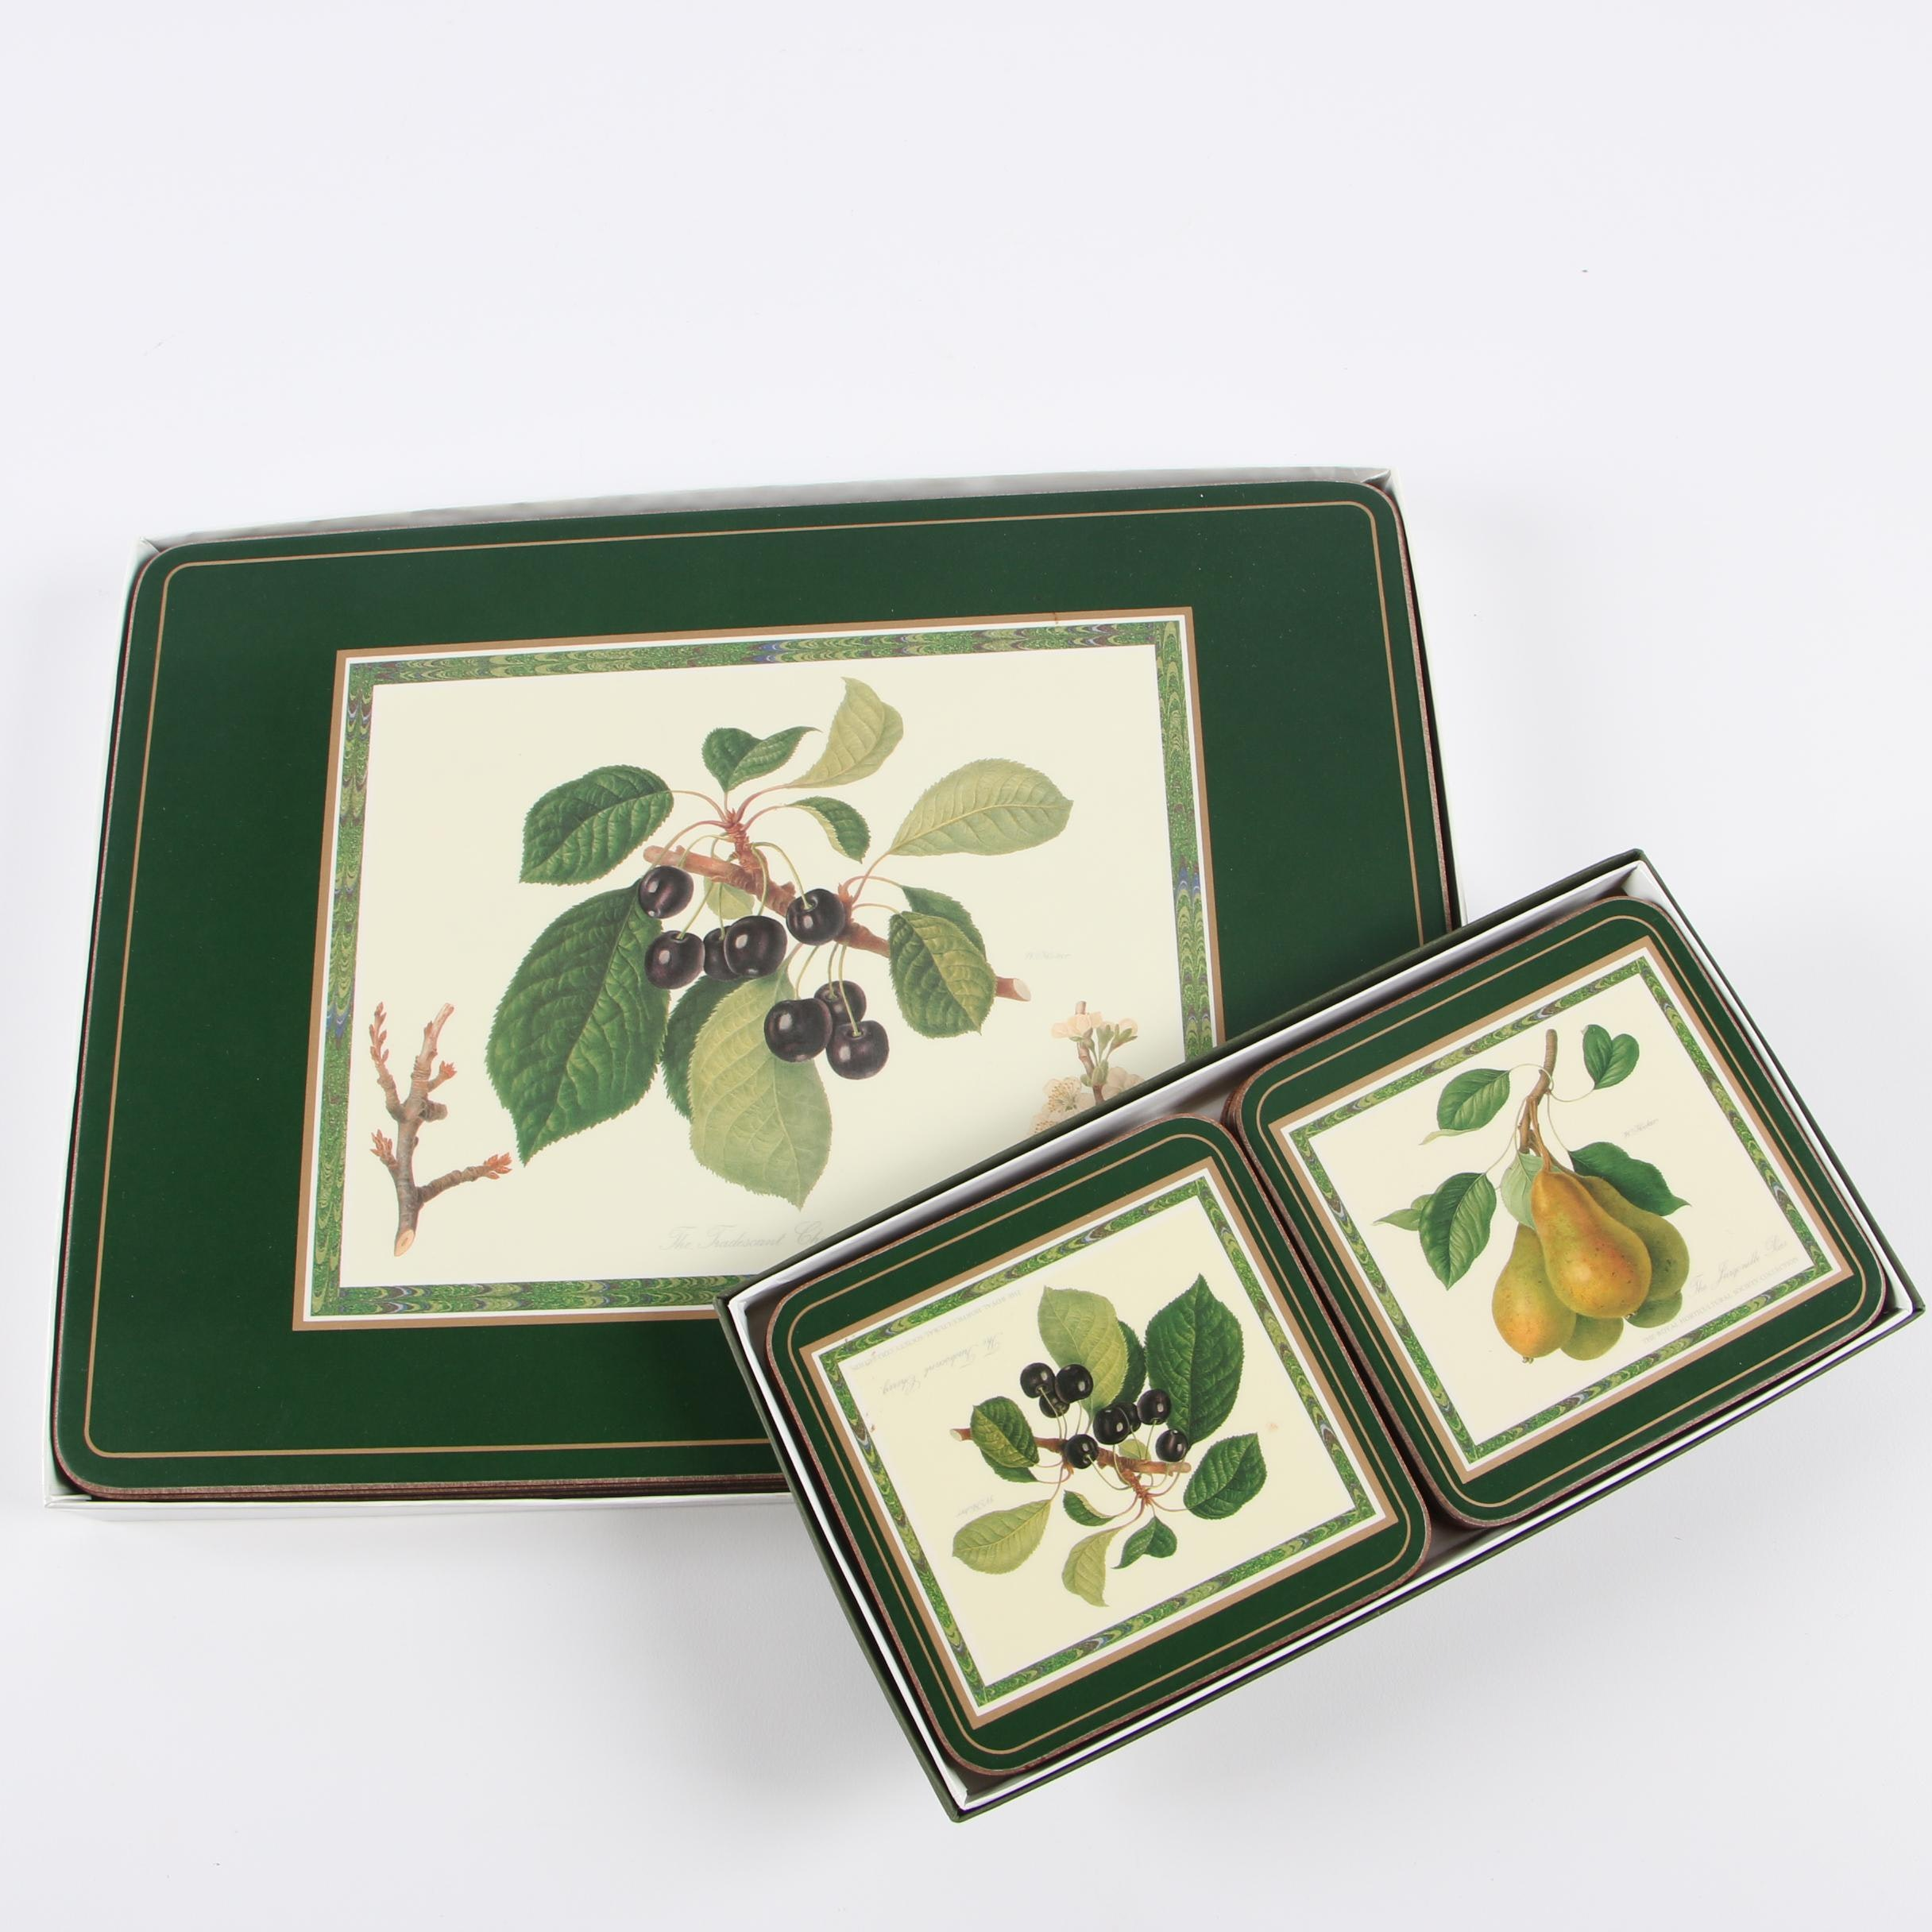 Pimpernel Fruit Motif Placemats and Coasters after William Hooker